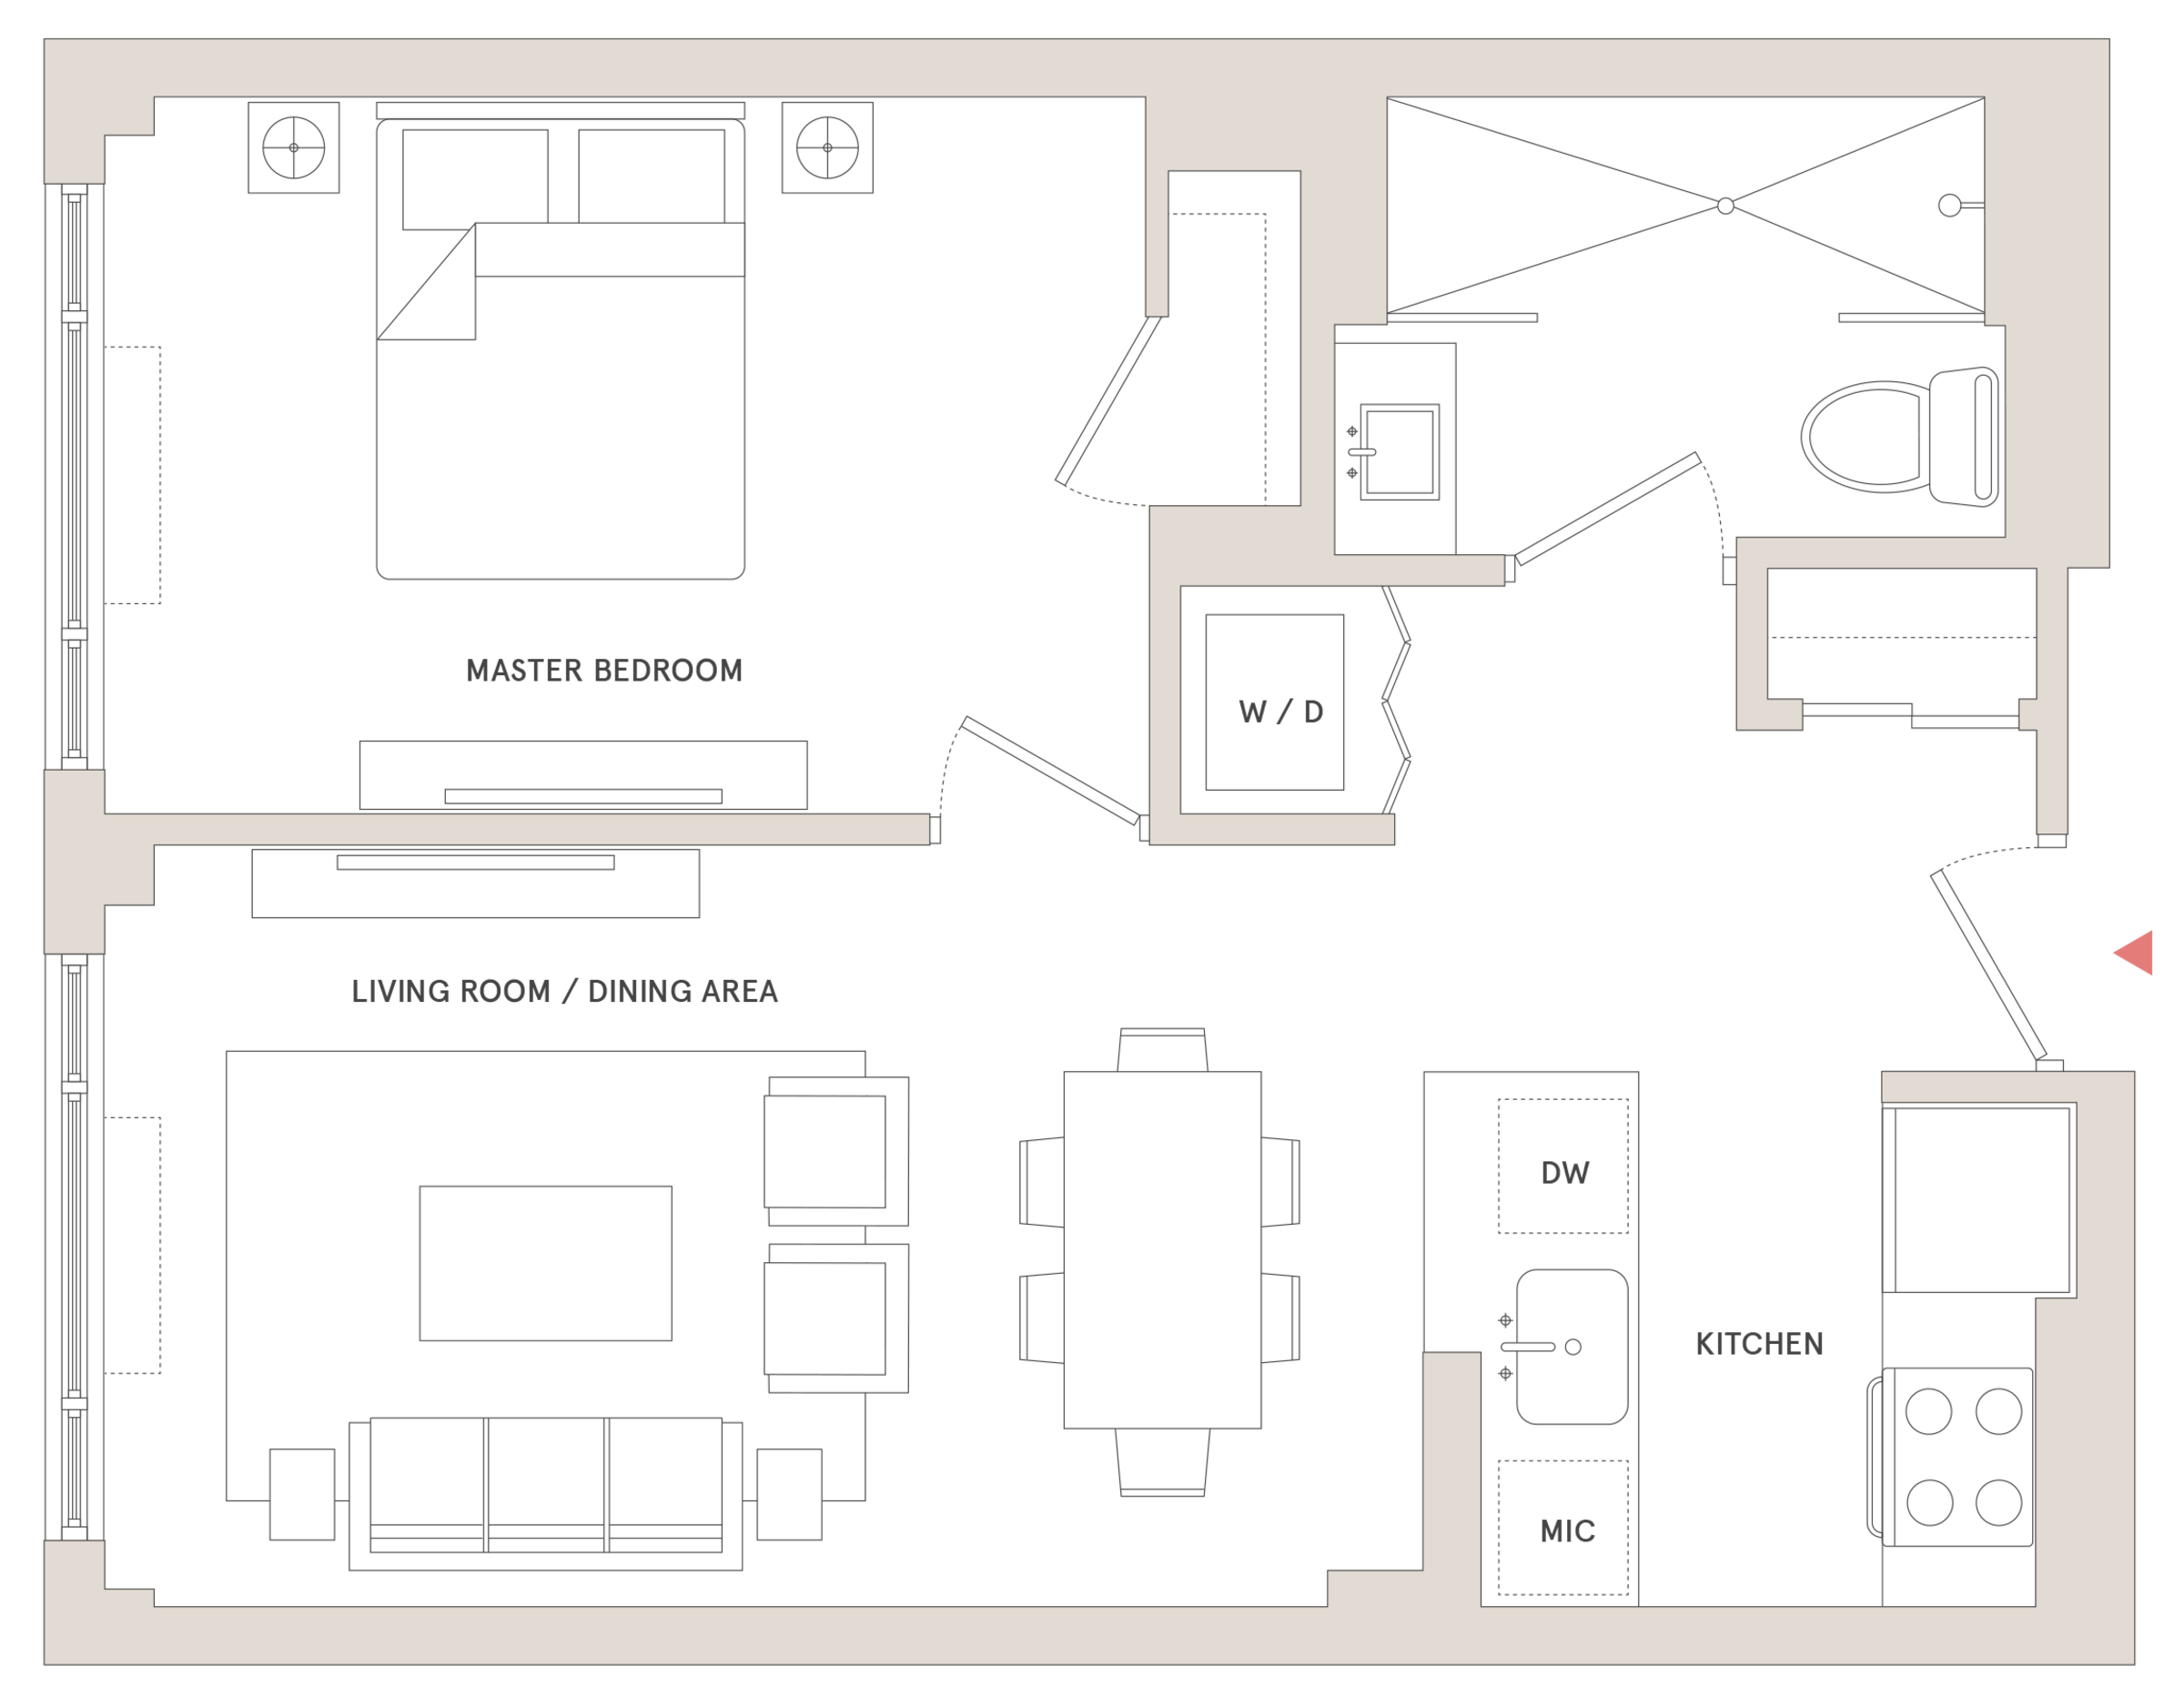 Full screen 181fs floorplans 170922 3 6f